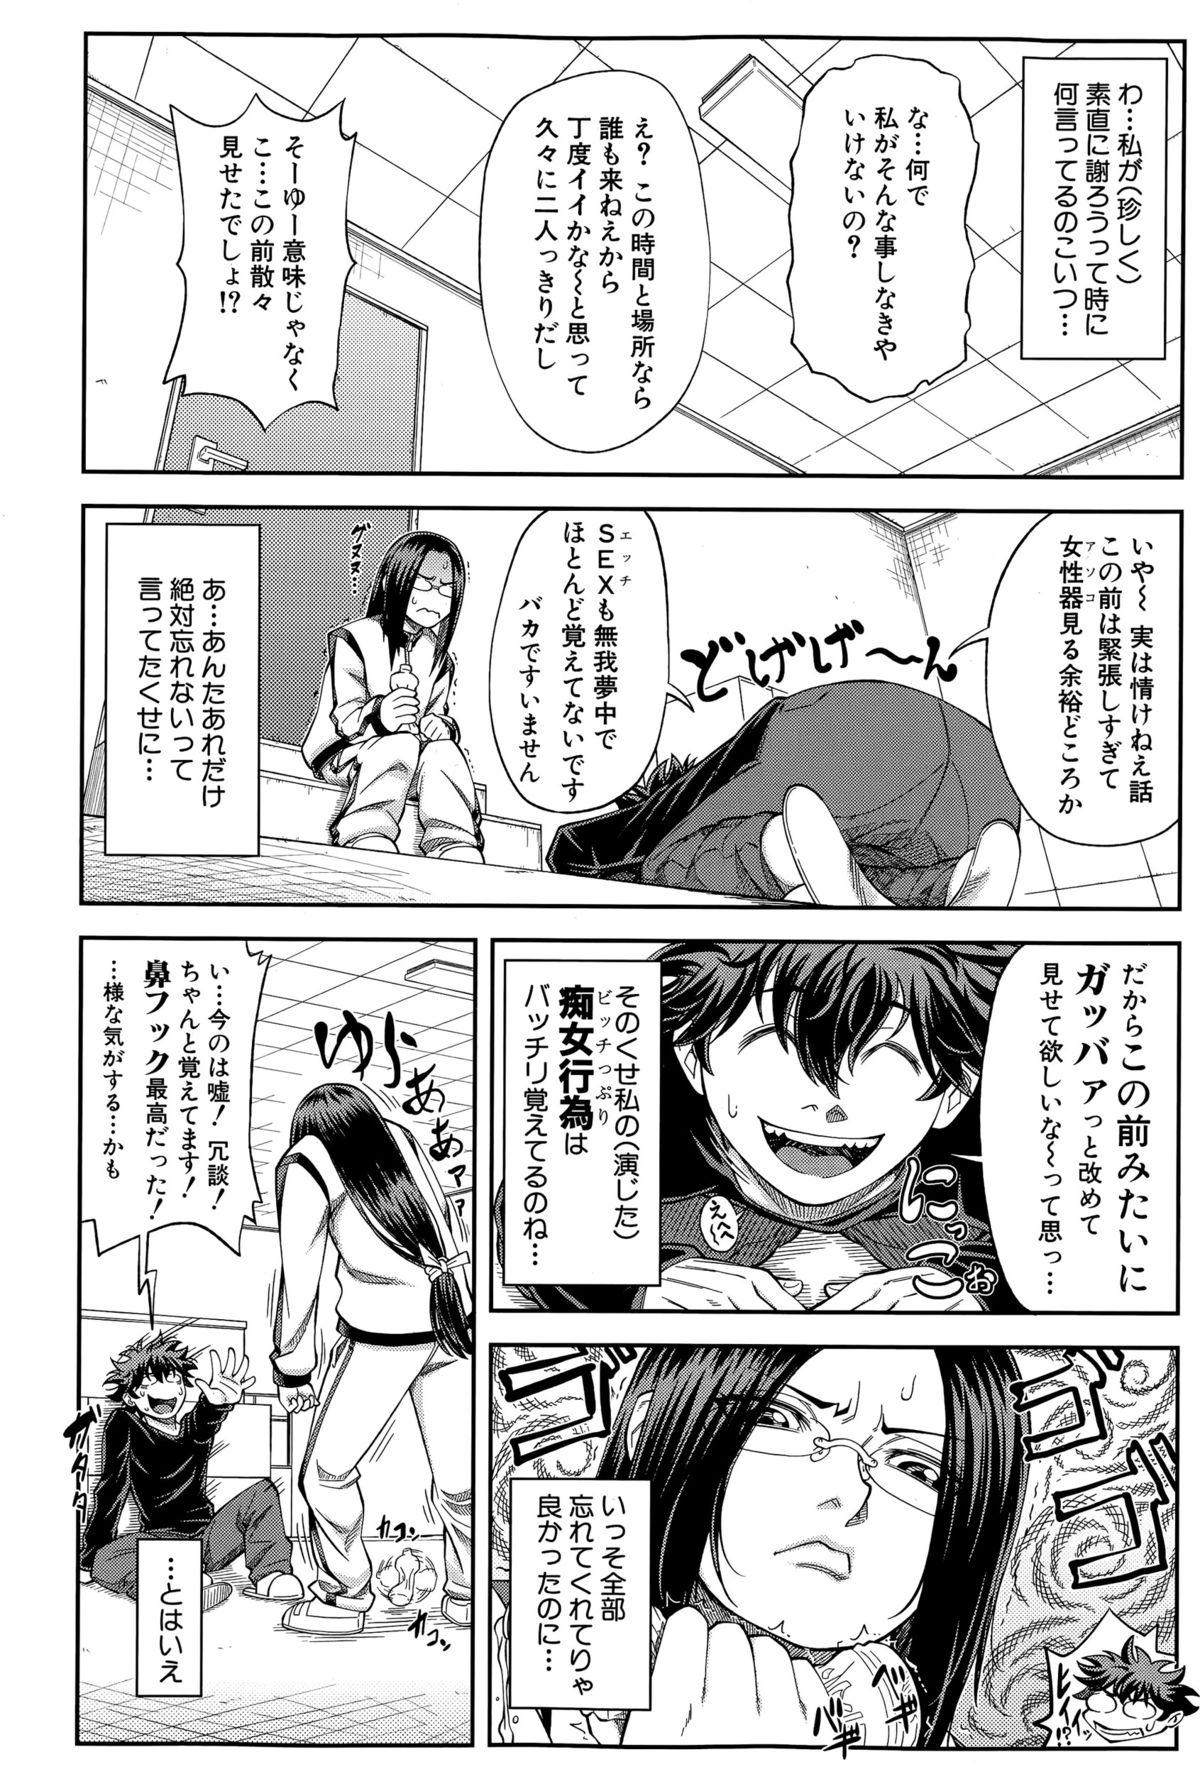 BUSTER COMIC 2015-07 75